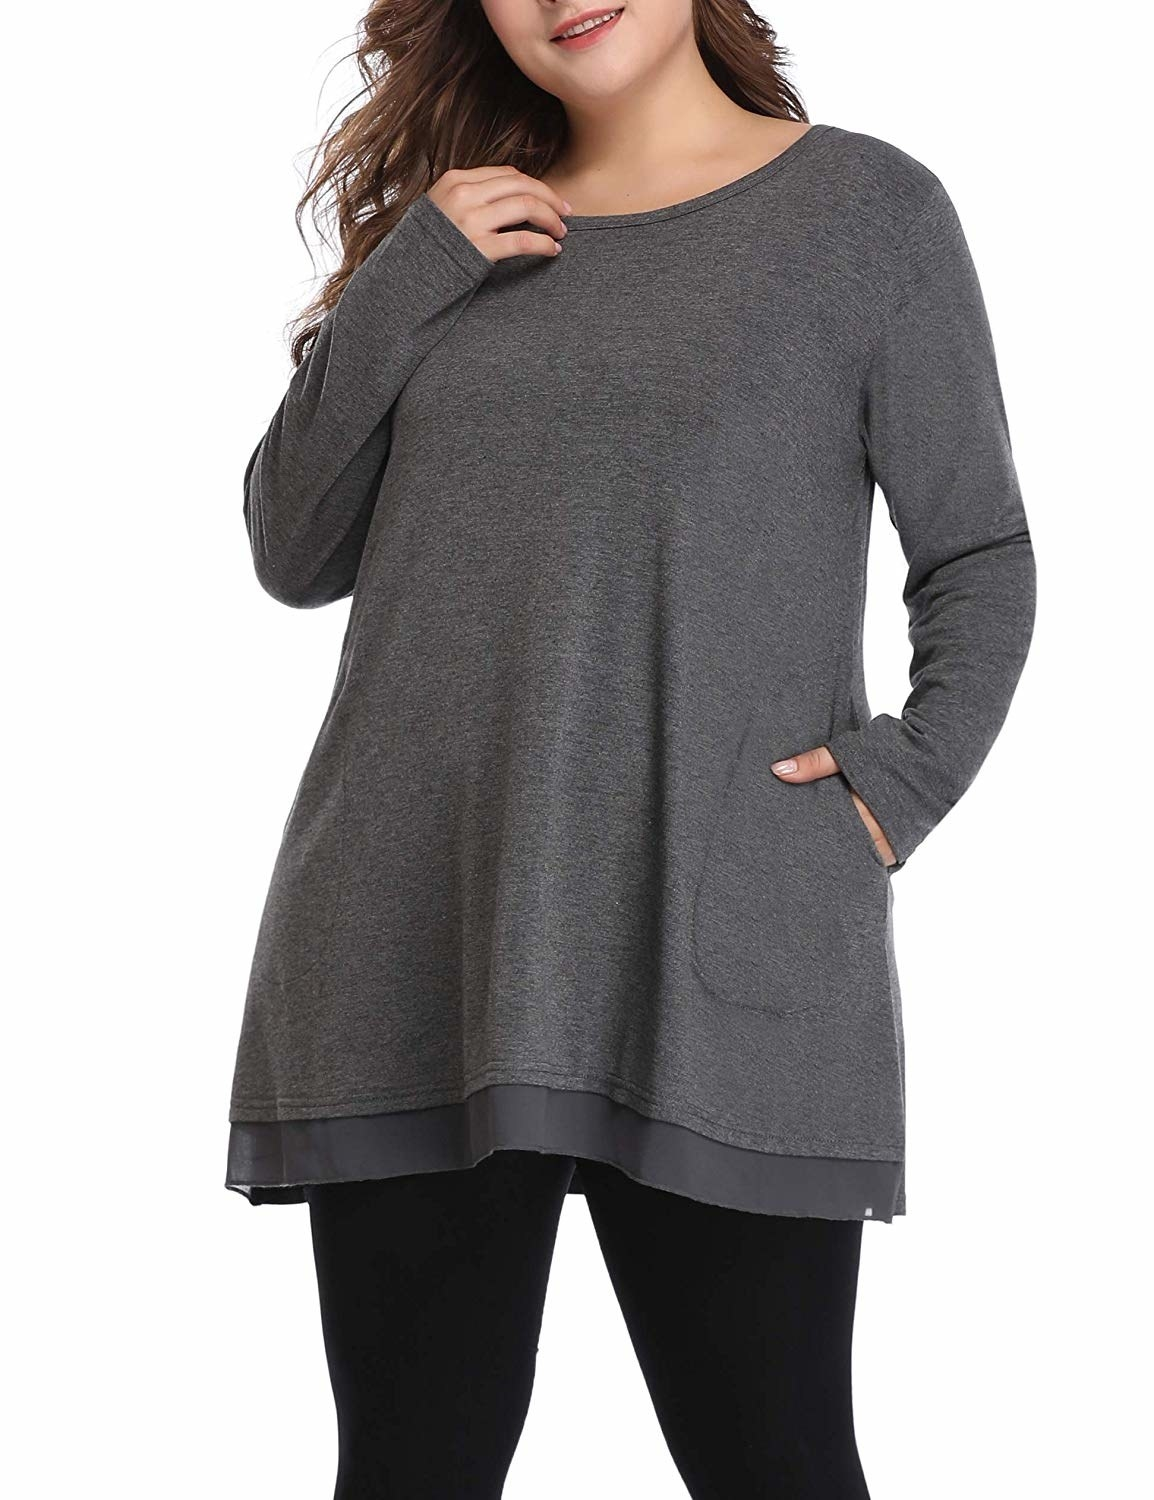 "Promising review: ""The fit was perfect: it's light, comfortable, and best of all, has pockets!! I love this and will order it in all of the colors."" —Karen NewlandGet it from Amazon for .99+ (available in sizes 1X-5X and two colors)."